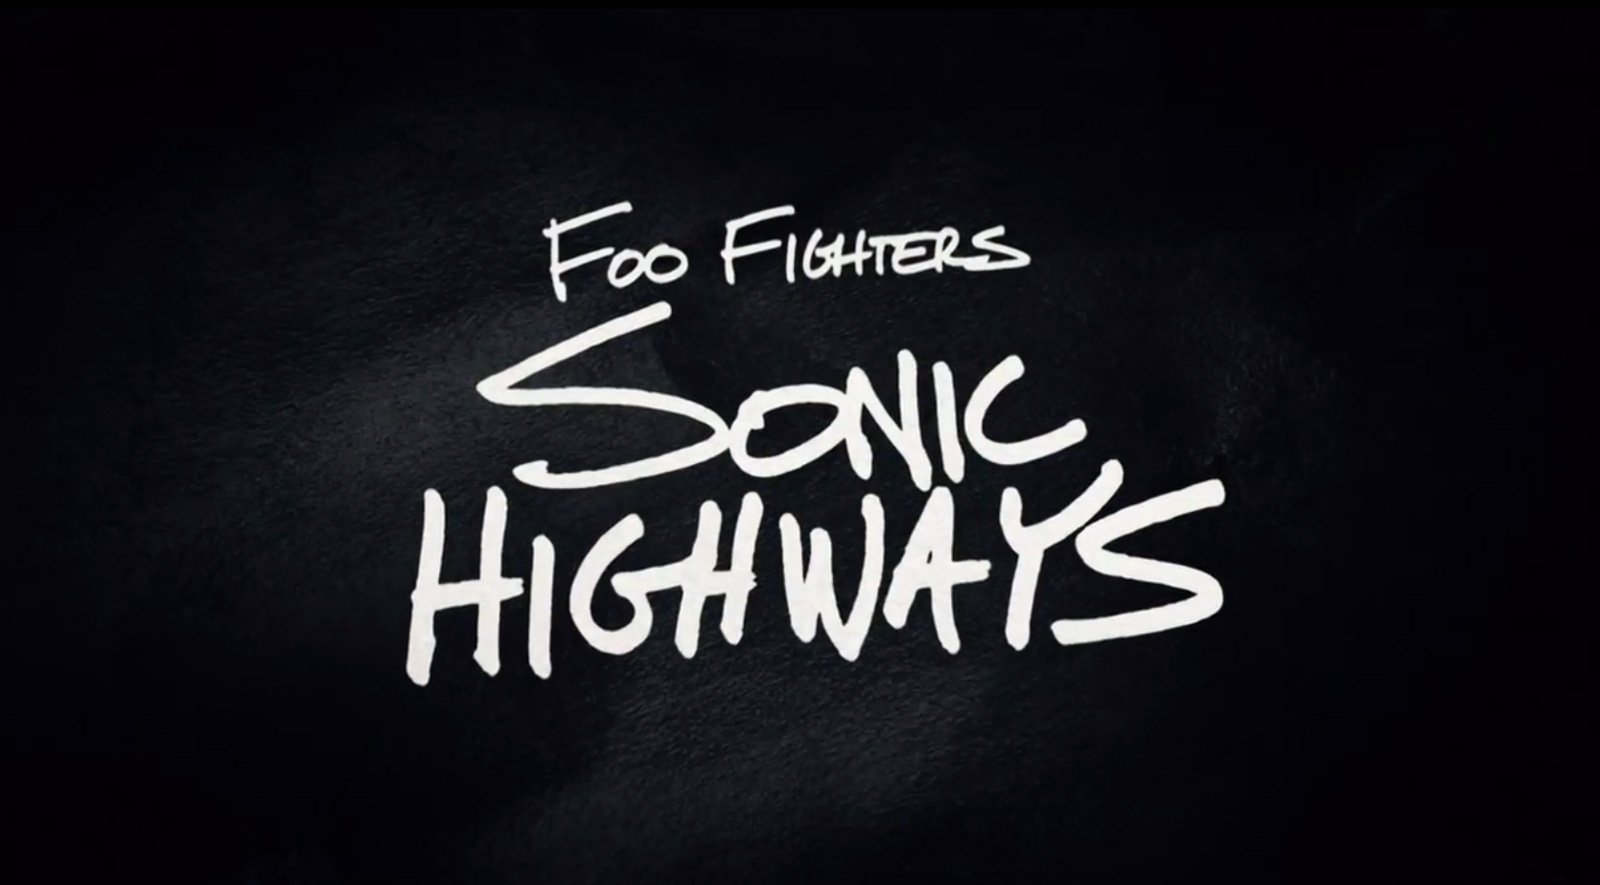 Sonic Highways, un retrato sonoro de Estados Unidos firmado por Foo Fighters